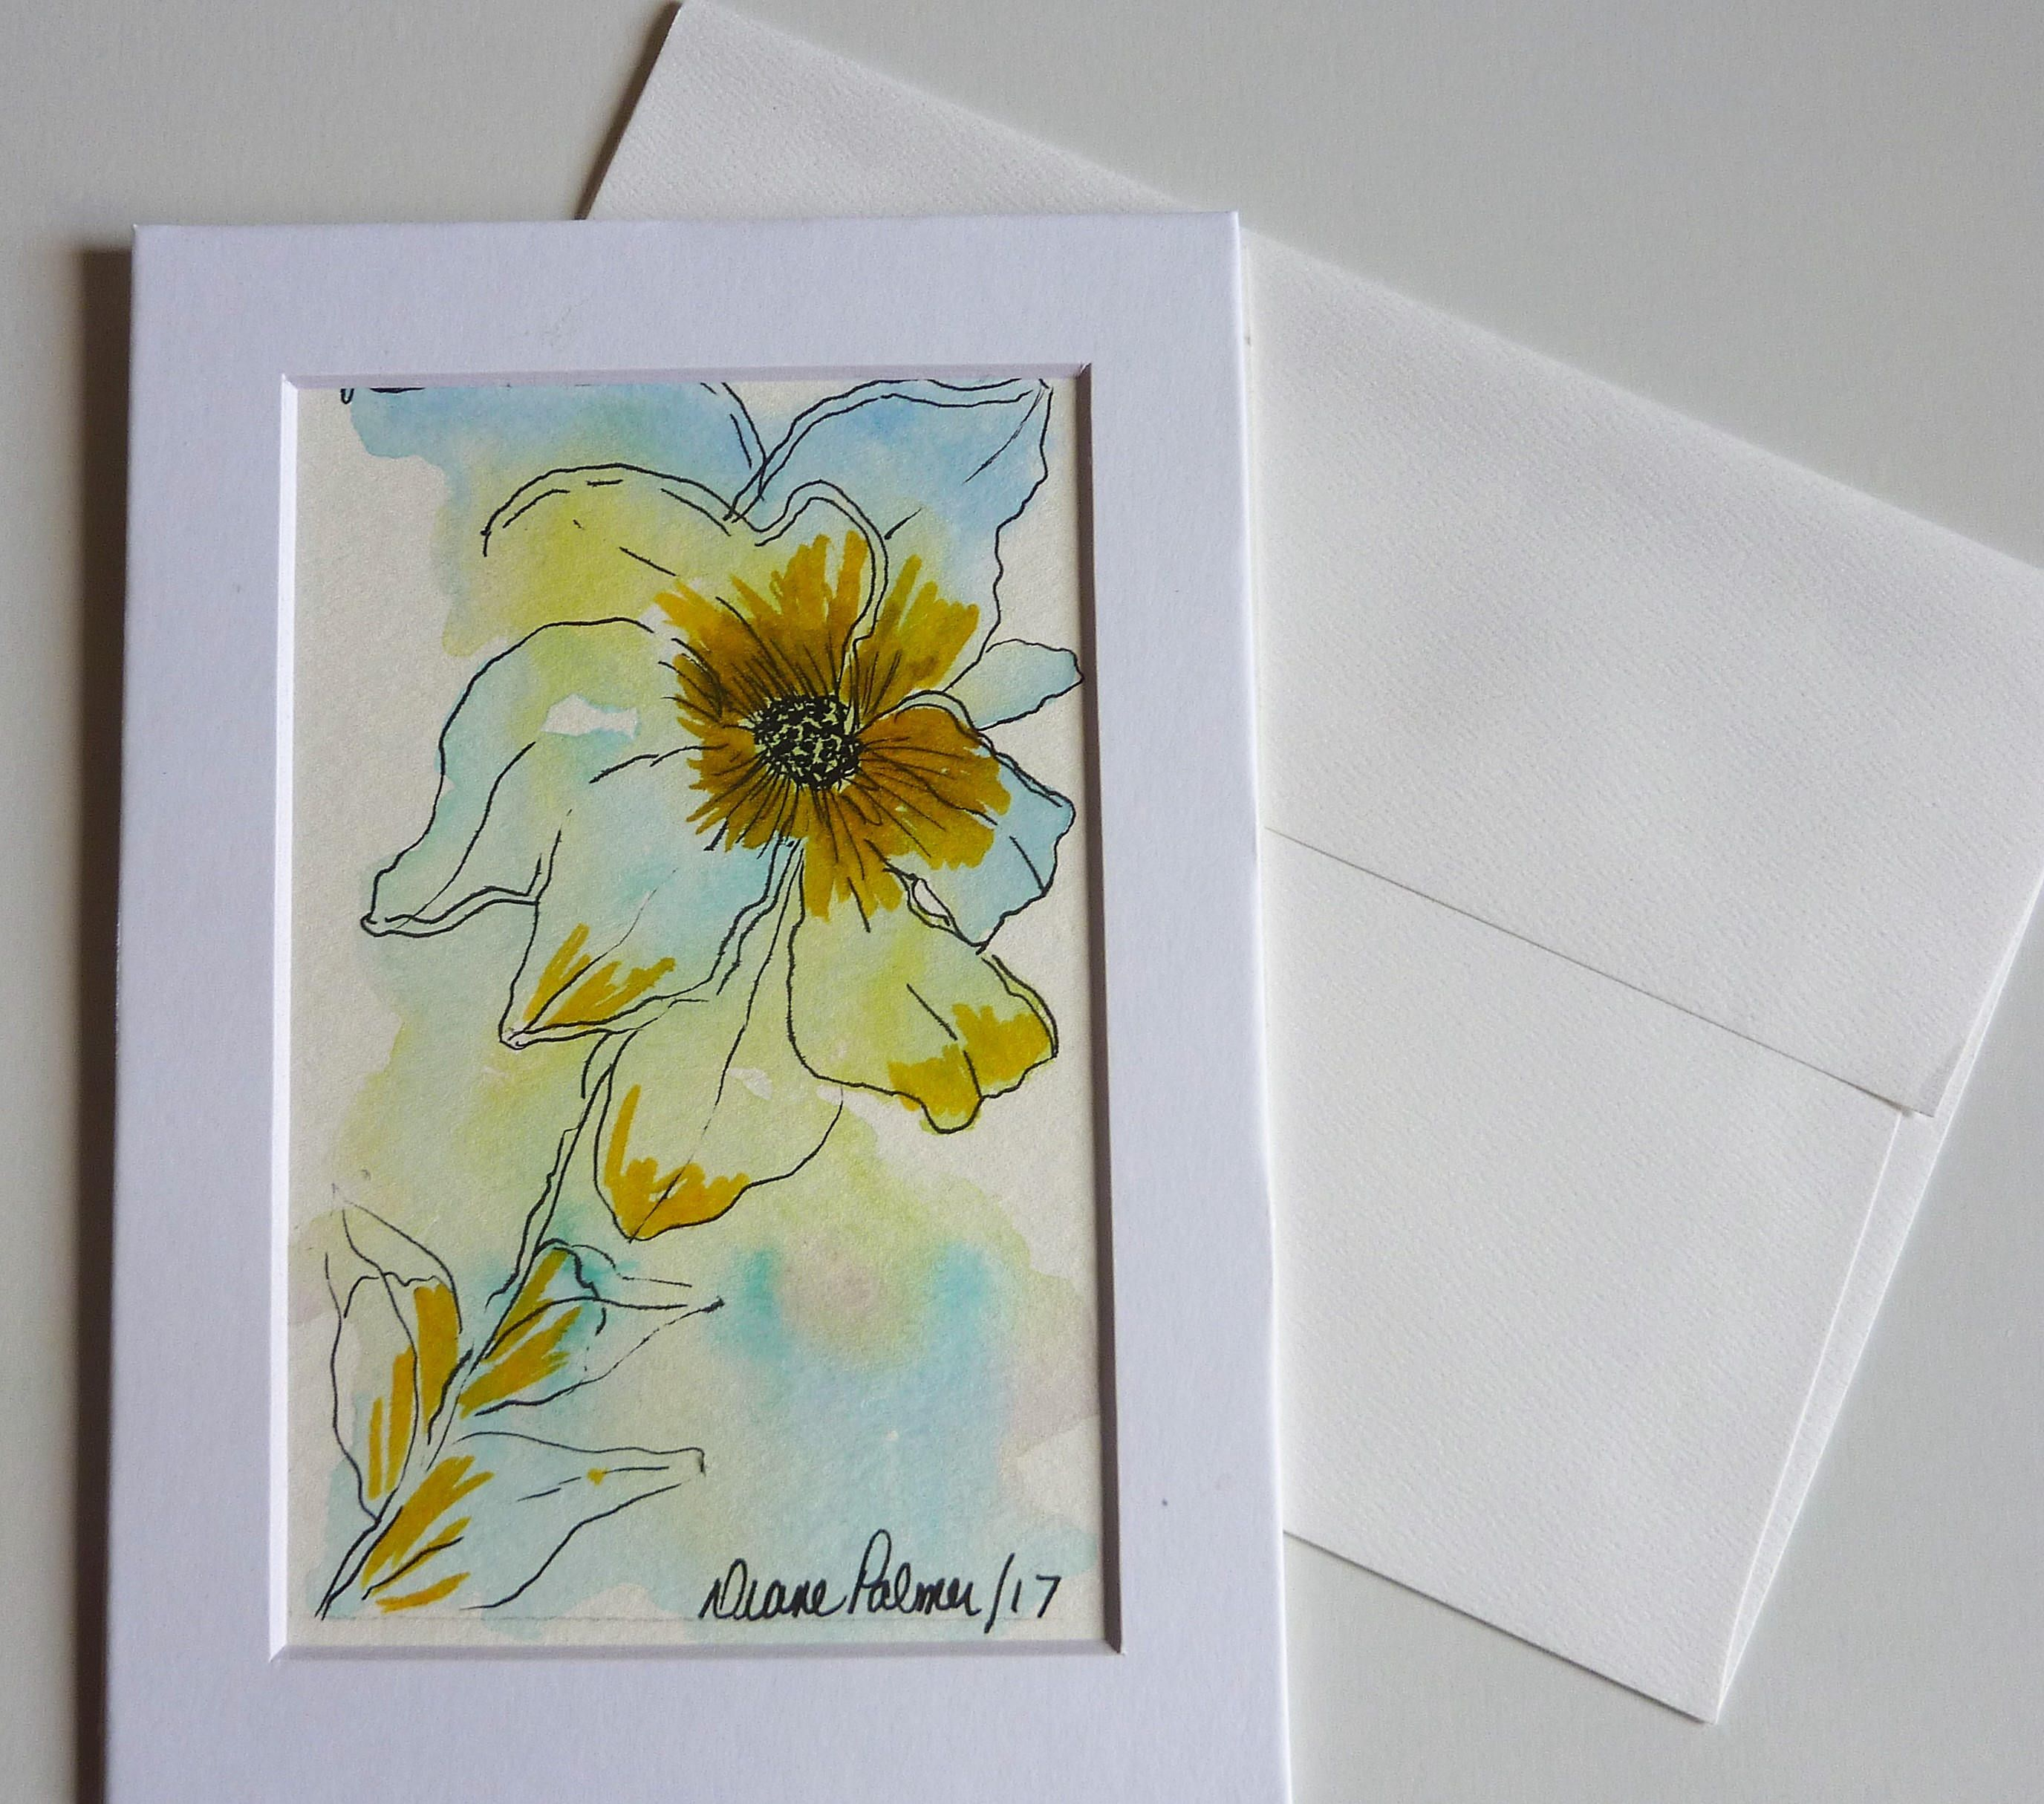 Watercolor doodle art 5 x 7 inch greeting card hand painted card watercolor doodle art 5 x 7 inch greeting card hand painted card kristyandbryce Choice Image